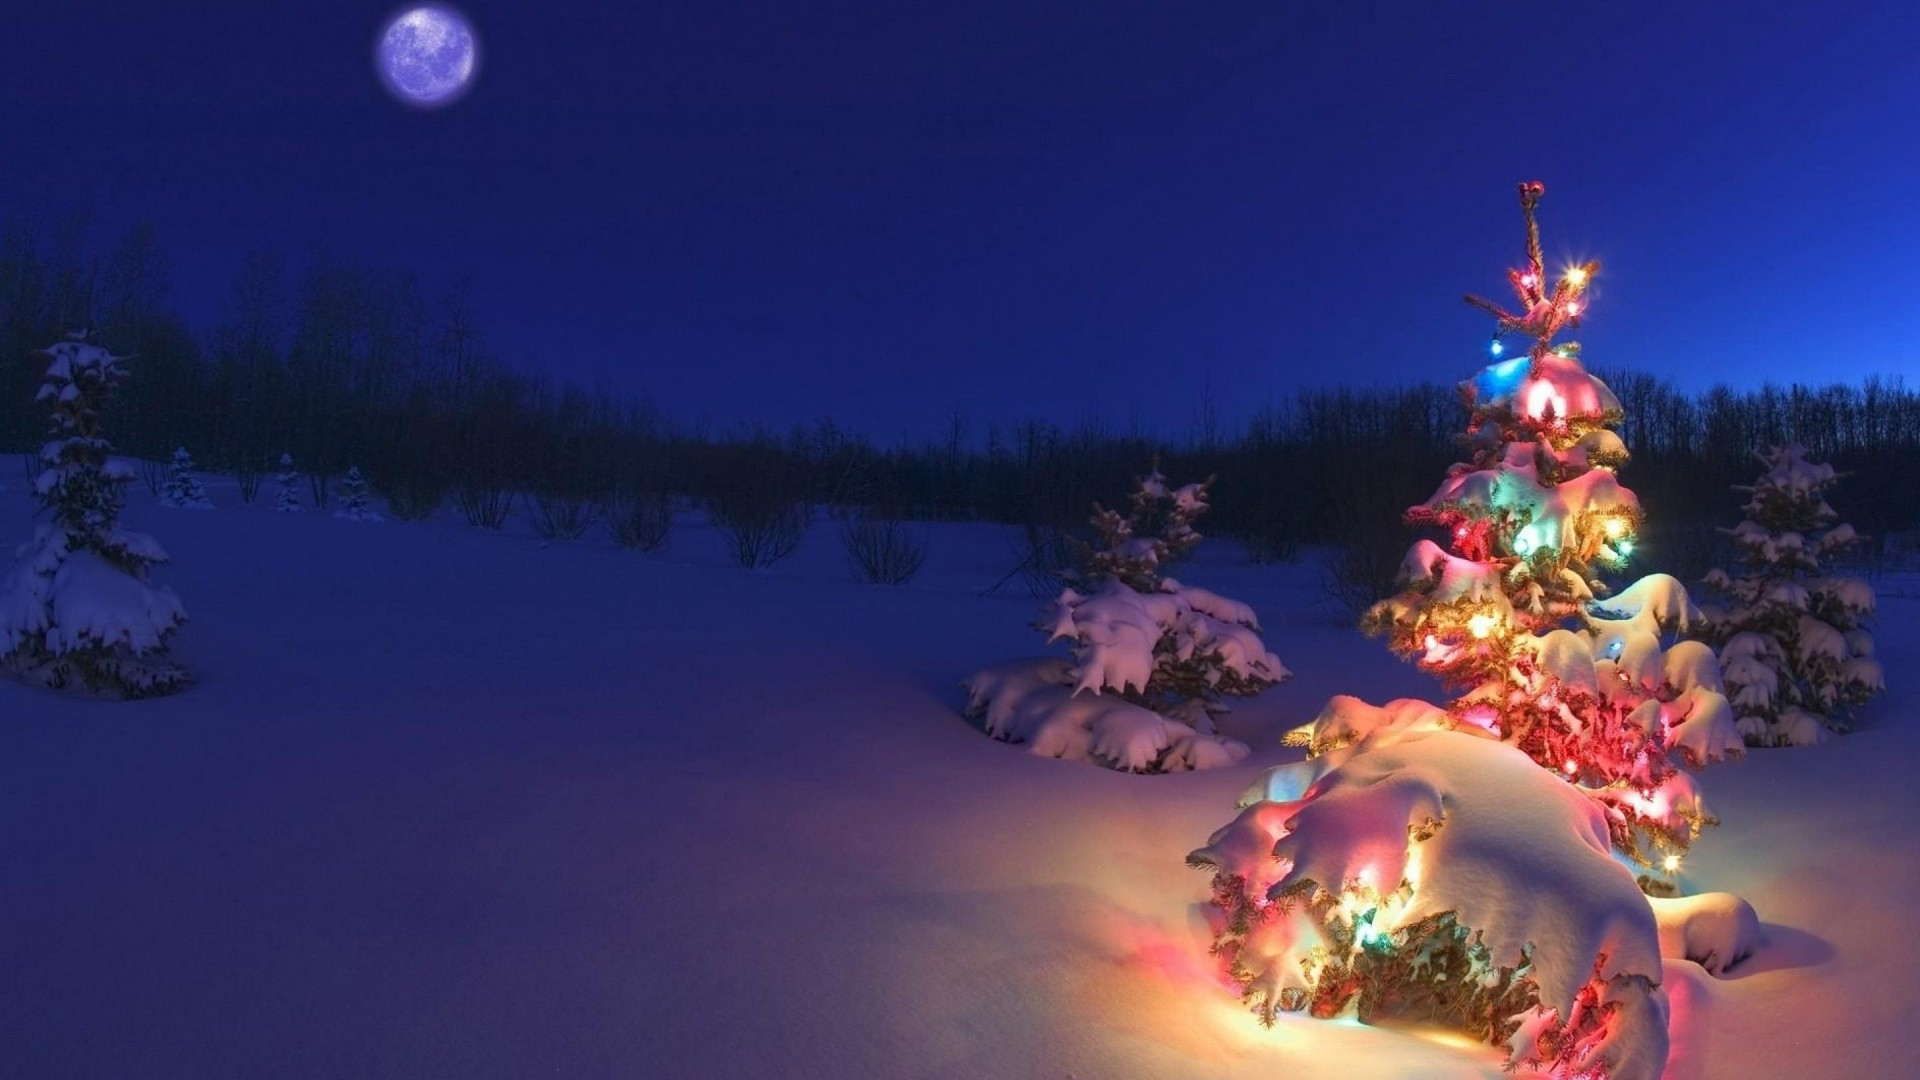 Christmas Night Moon Wallpaper for Desktop 1920x1080